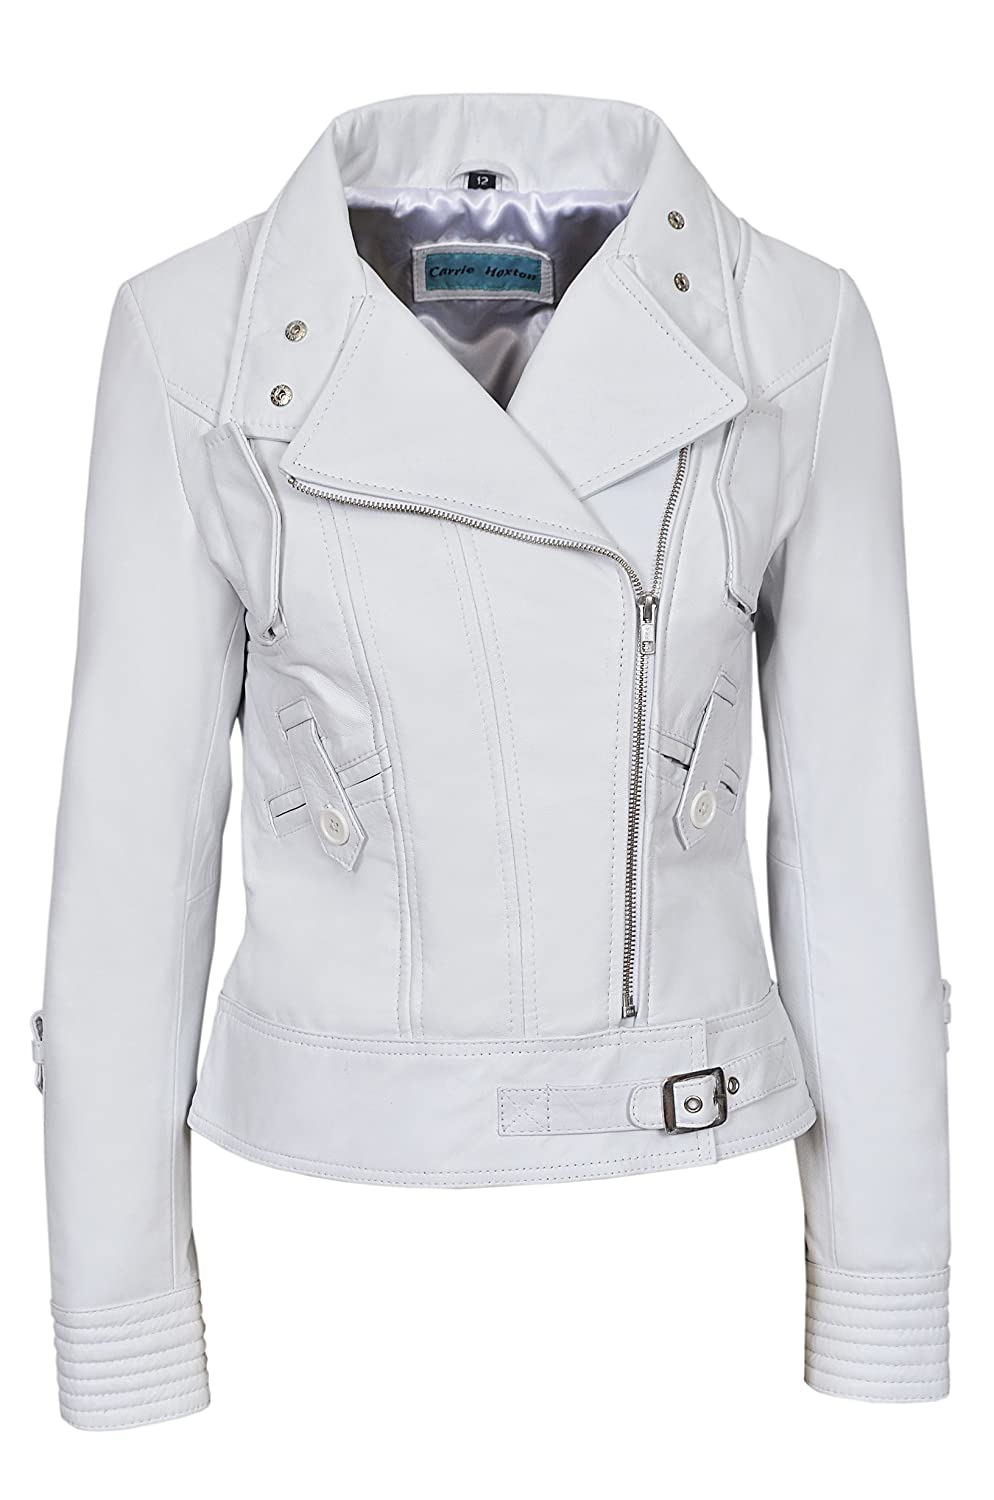 Carrie CH Hoxton Ladies White 'Supermodel' Biker Style Designer 100% Real Napa Italian Leather Jacket 4110